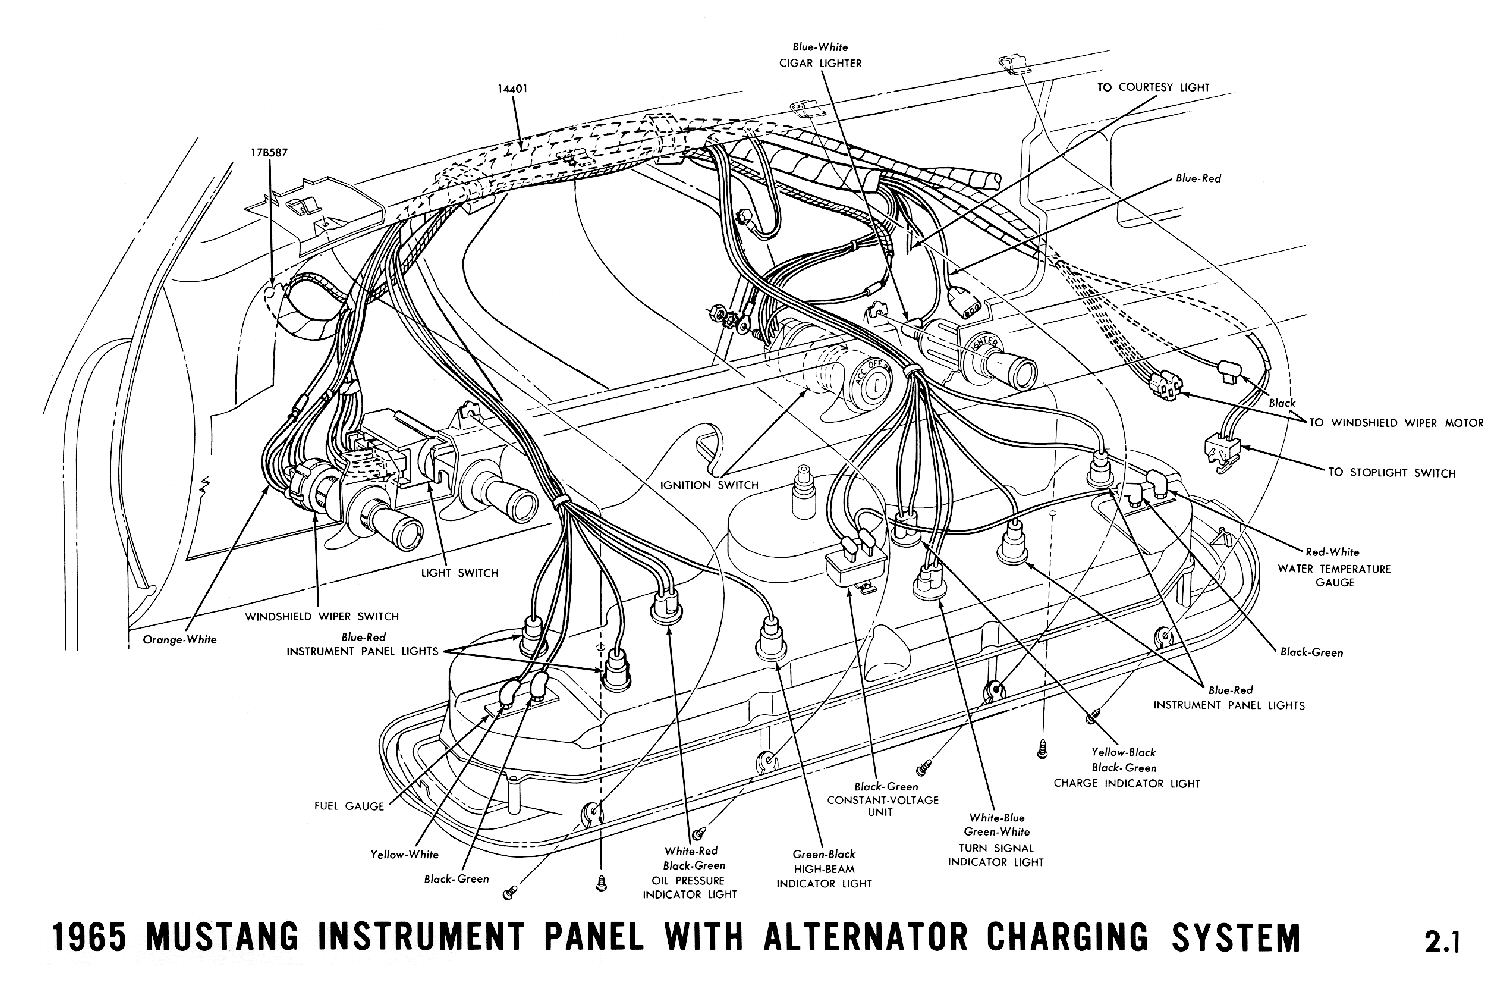 1965 mustang wiring diagrams average joe restoration rh averagejoerestoration com 1966 mustang complete wiring harness 1966 mustang wiring harness kit